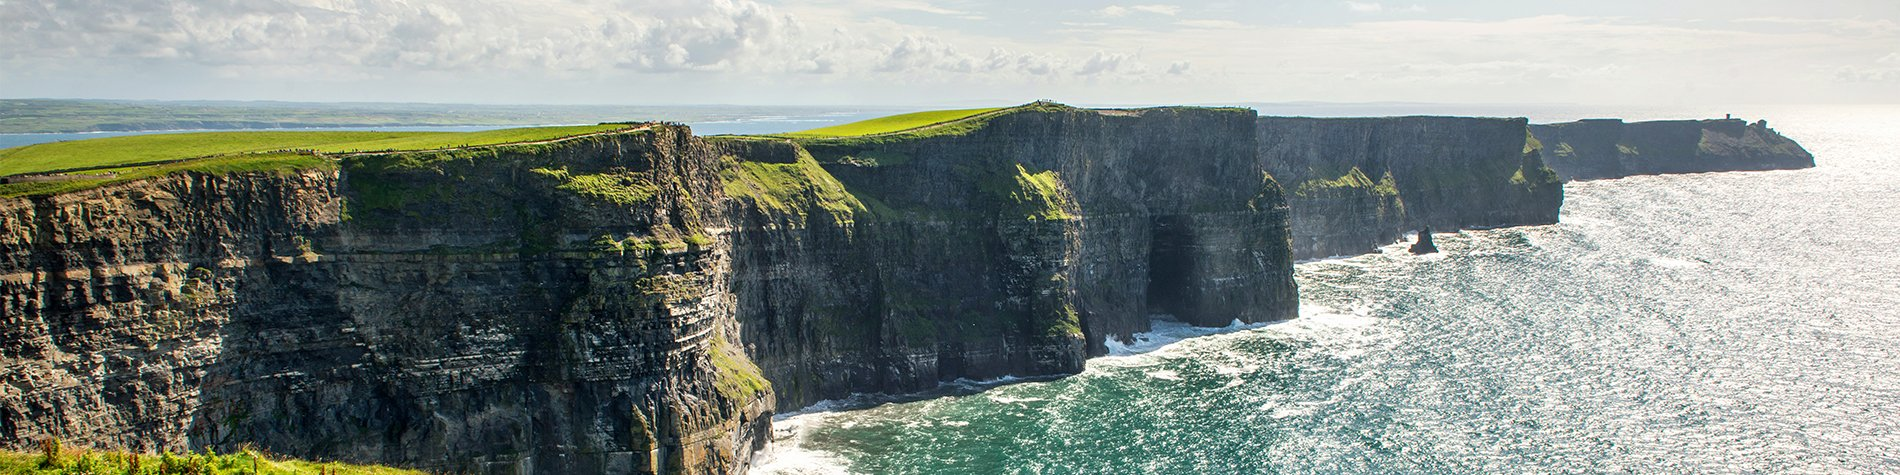 Landscape of Cliffs of Moher - Day Trips Dublin